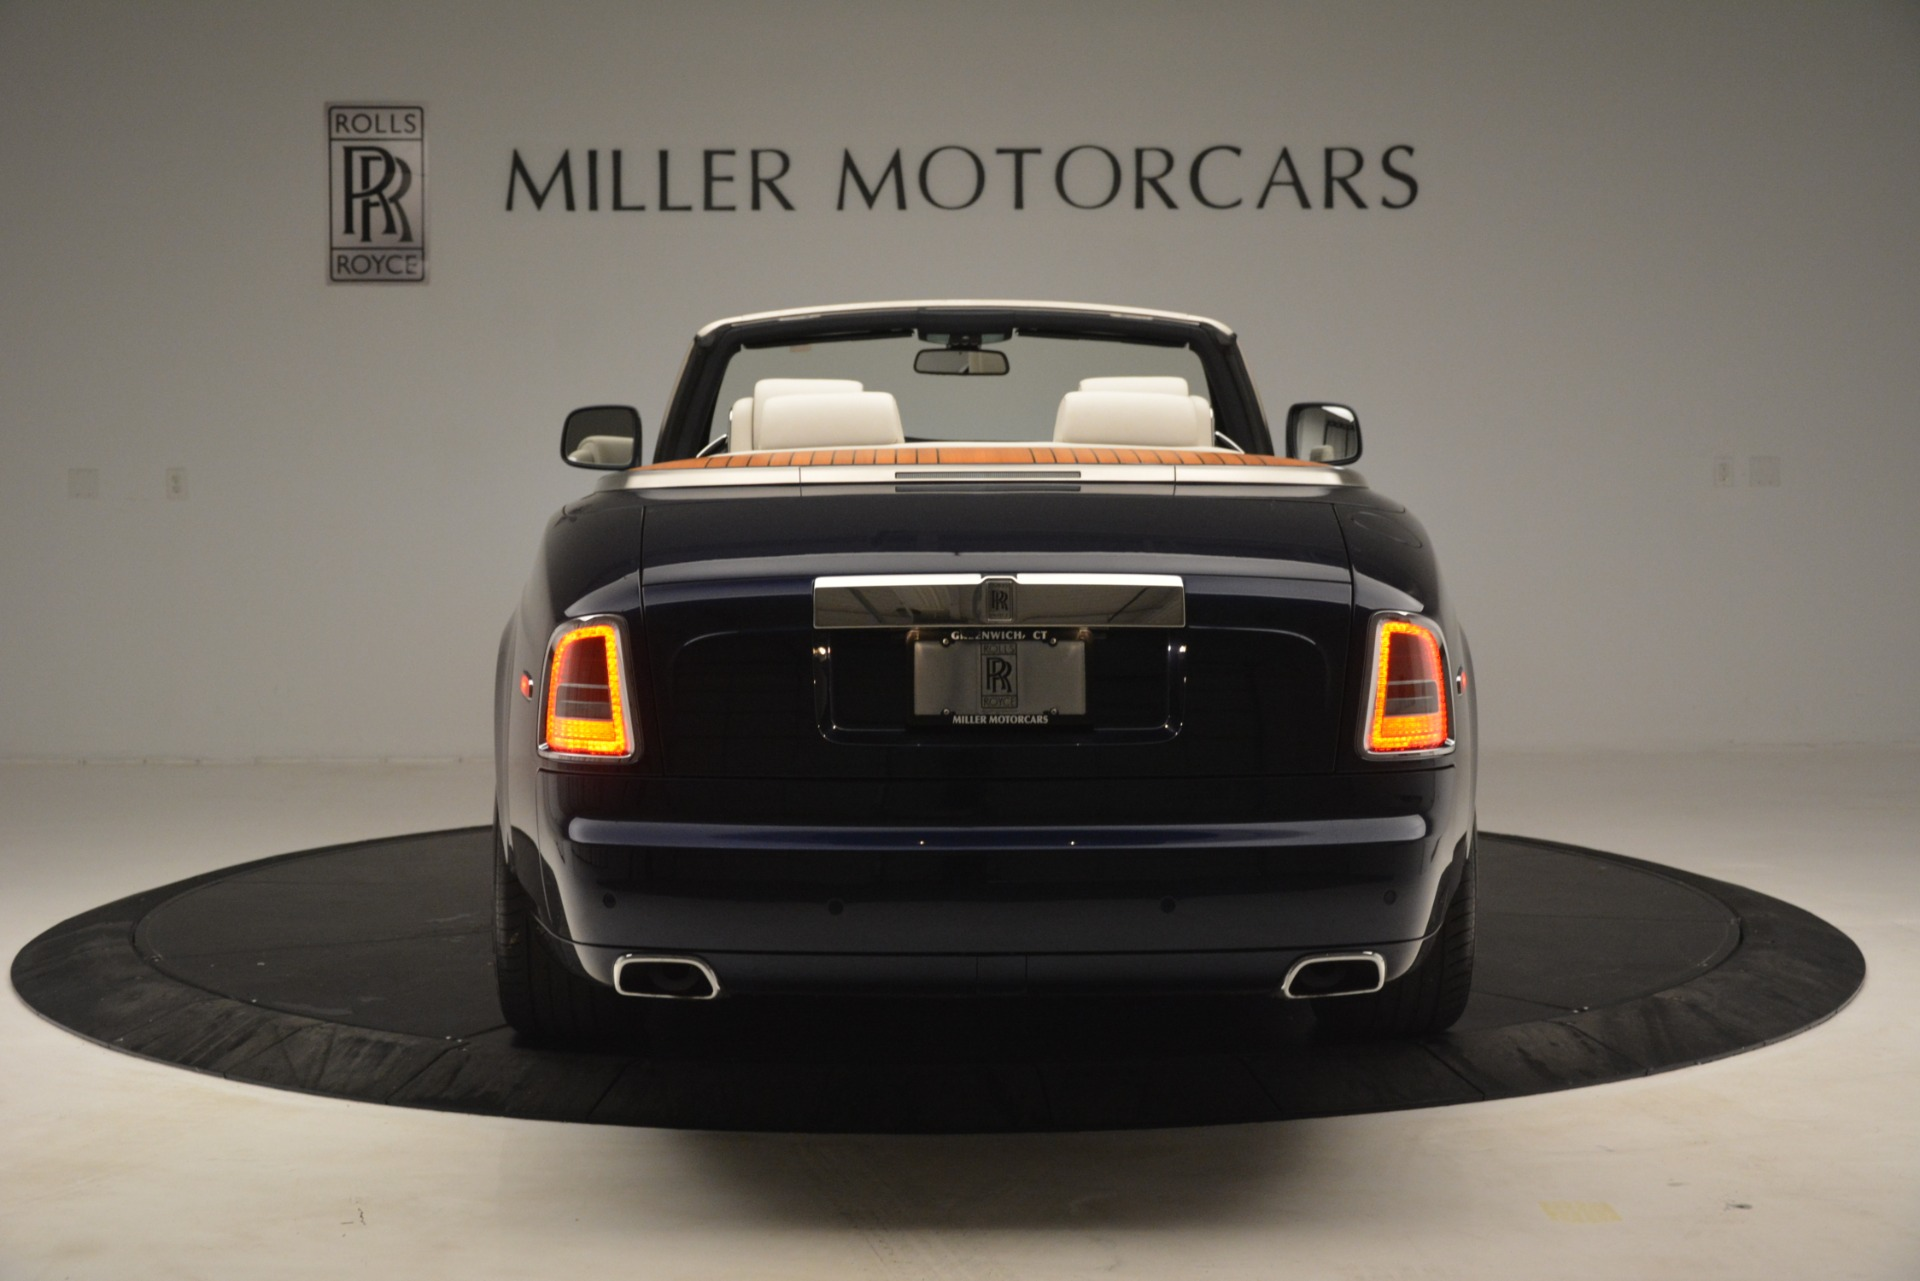 Used 2013 Rolls-Royce Phantom Drophead Coupe  For Sale In Westport, CT 2999_p9